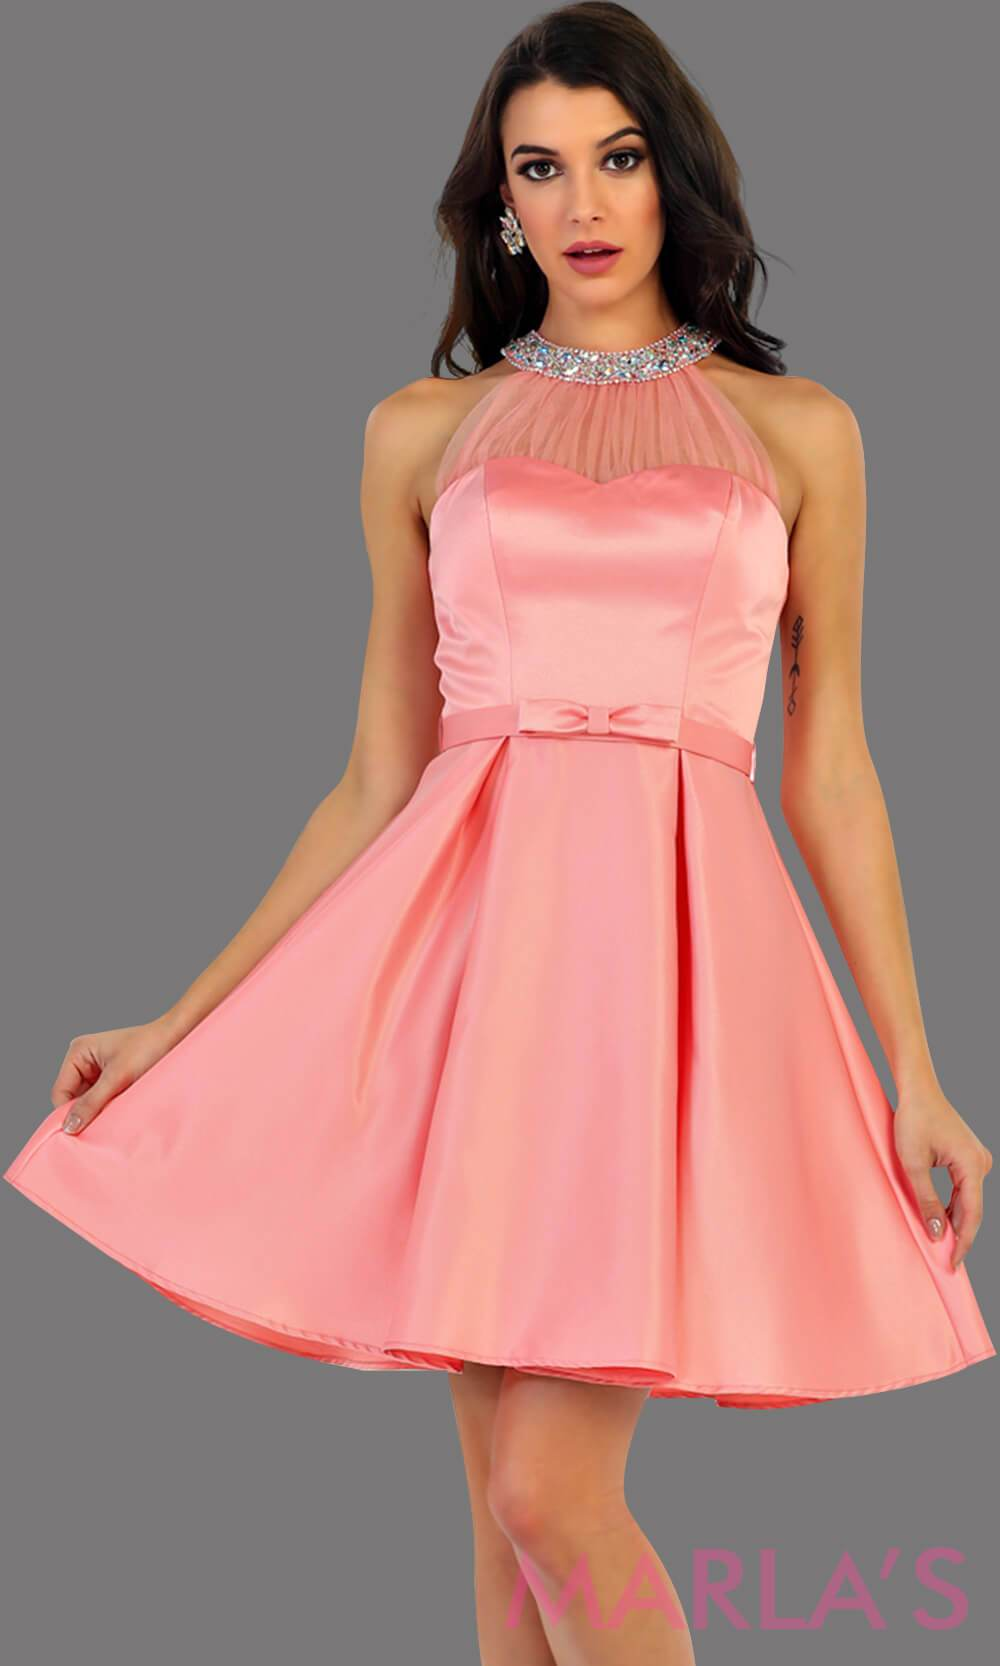 1474-Short High neck taffeta coral grade 8 grad dress with rhinestone neckline. Perfect as a confirmation dress, wedding guest dress, graduation dress, short prom dress, or damas dress. Available in plus sizes